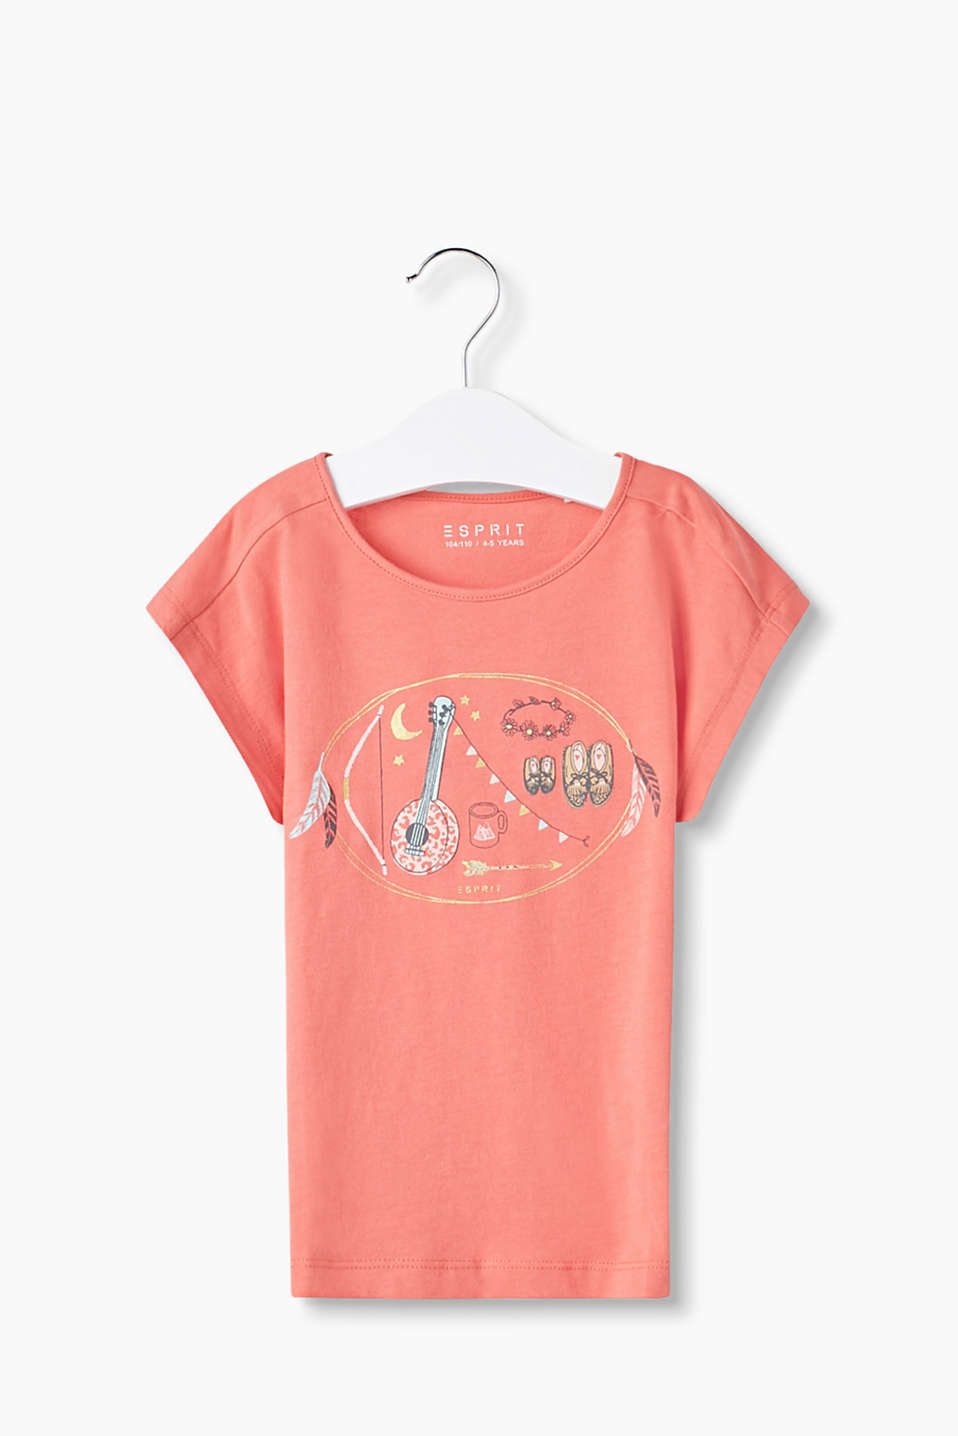 Pure cotton, round neck T-shirt printed with partially glittering motifs